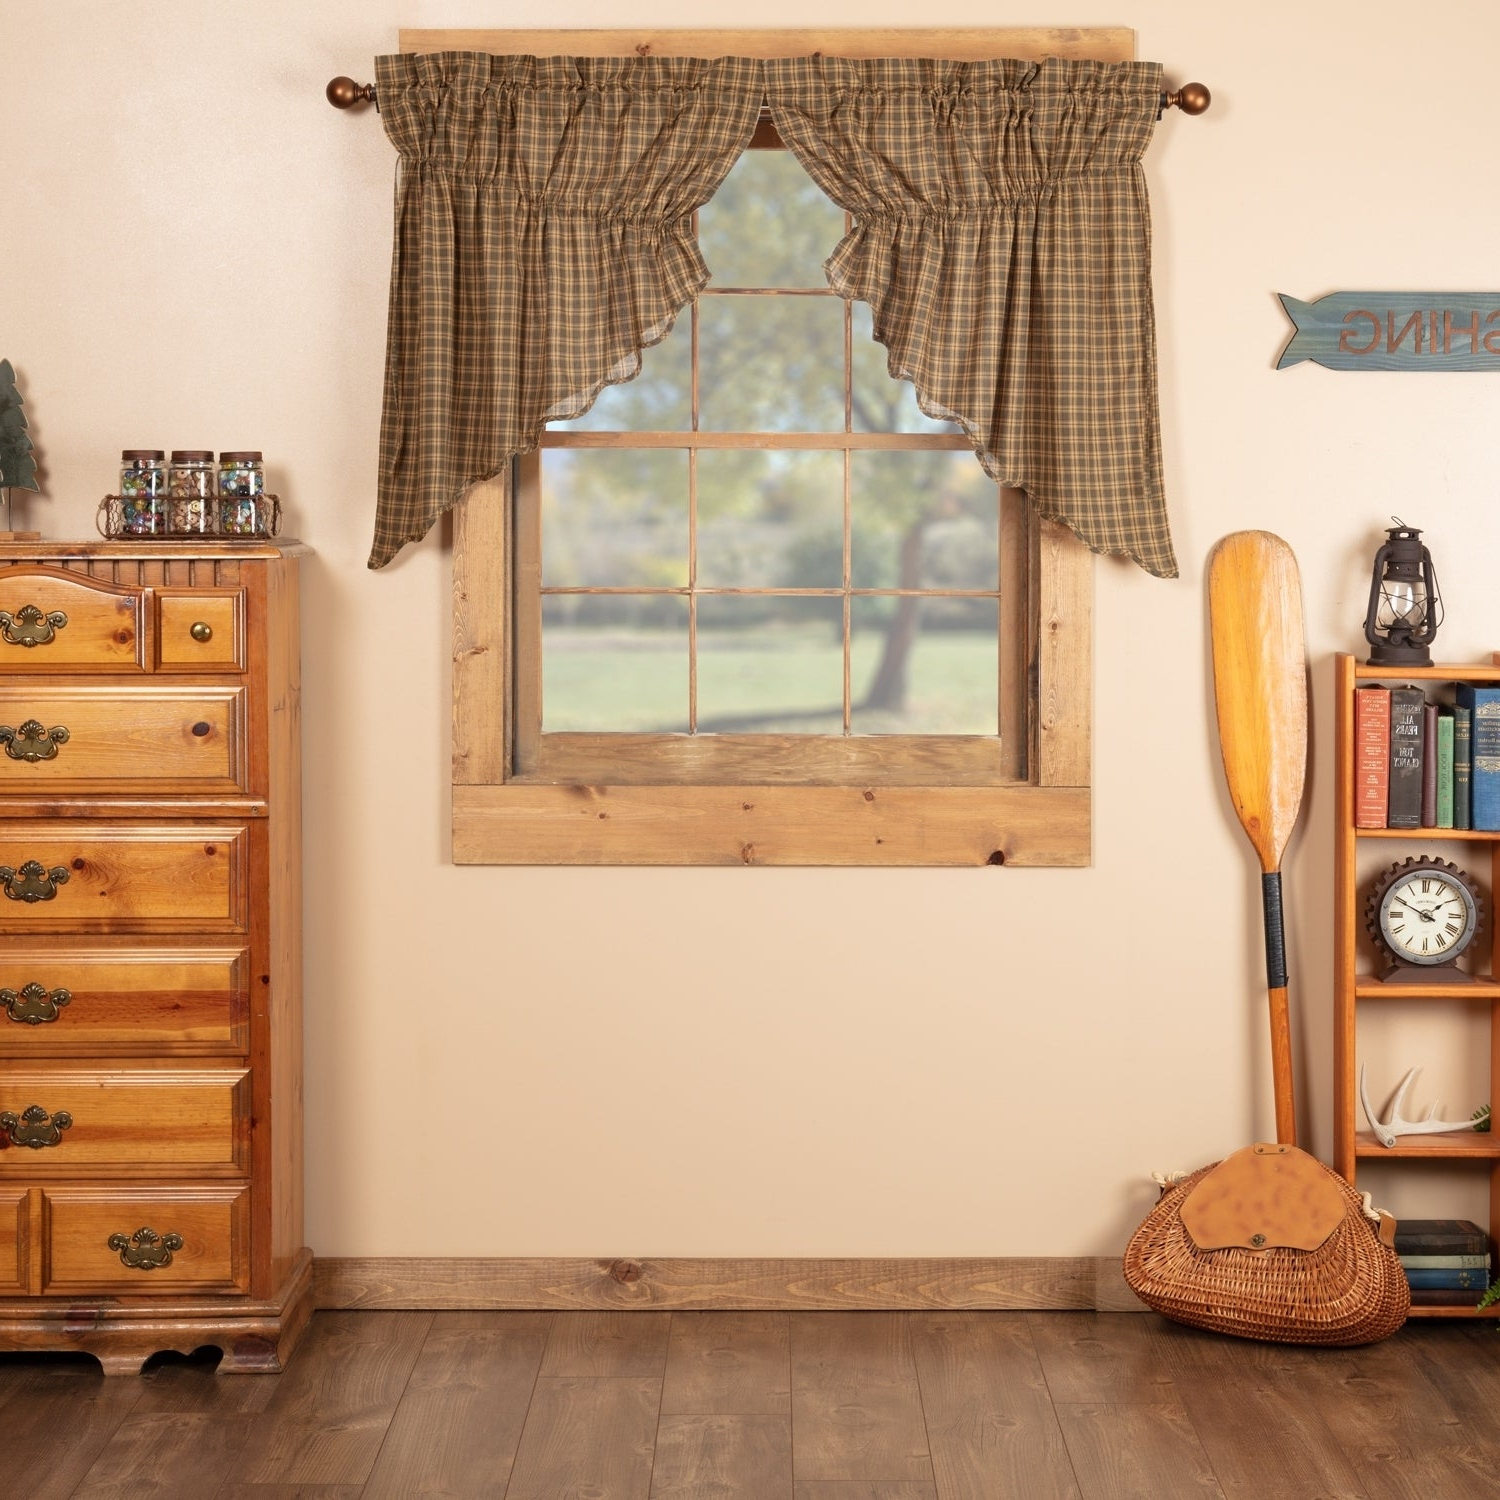 Current Rustic Kitchen Curtains Intended For Details About Green Rustic Kitchen Curtains Vhc Cedar Ridge Prairie Swag Cedar Green, Natural, (View 6 of 20)